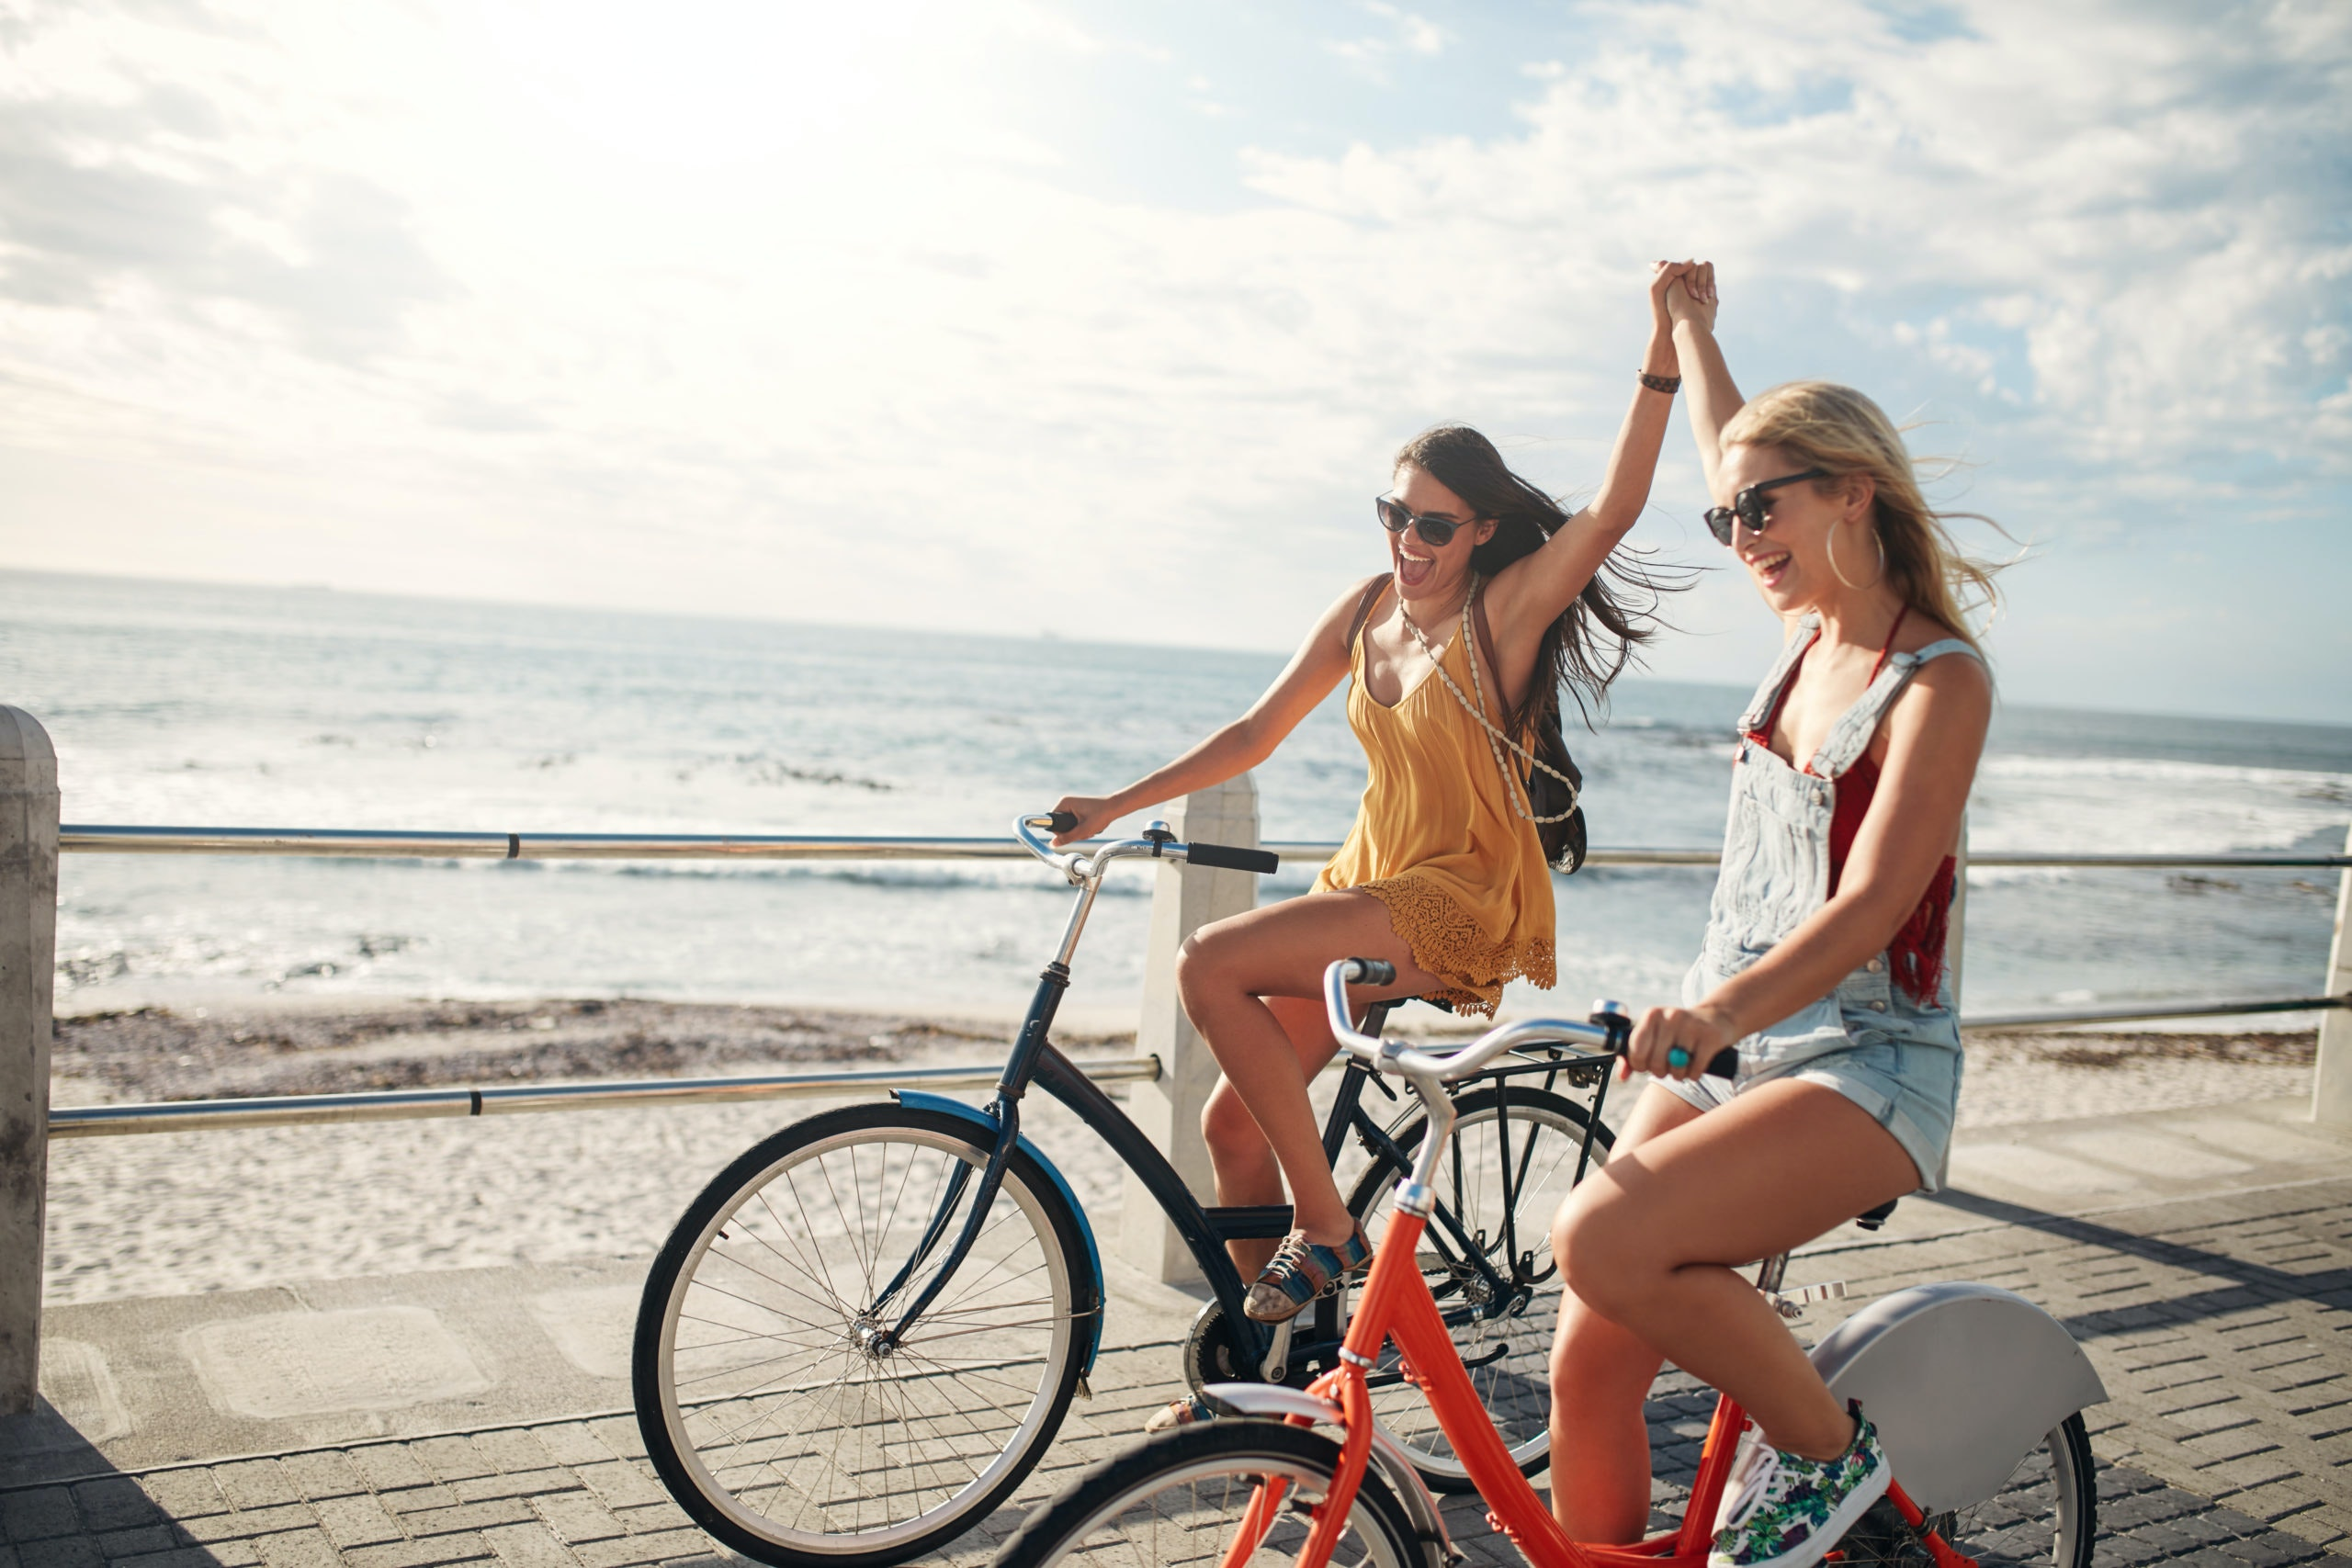 Two girls riding bikes by the beach